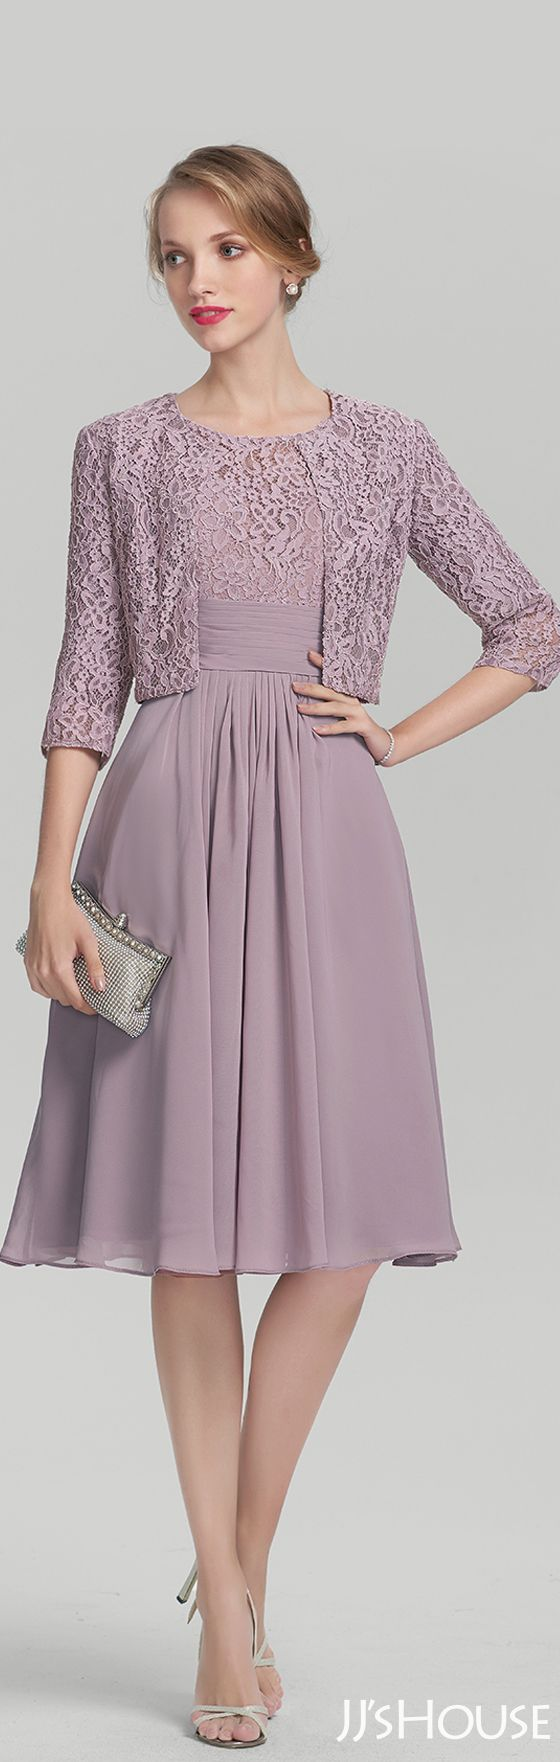 A-Line/Princess Scoop Neck Knee-Length Chiffon Lace Mother of the Bride Dress With Ruffle#JJsHouse #Mother dresses